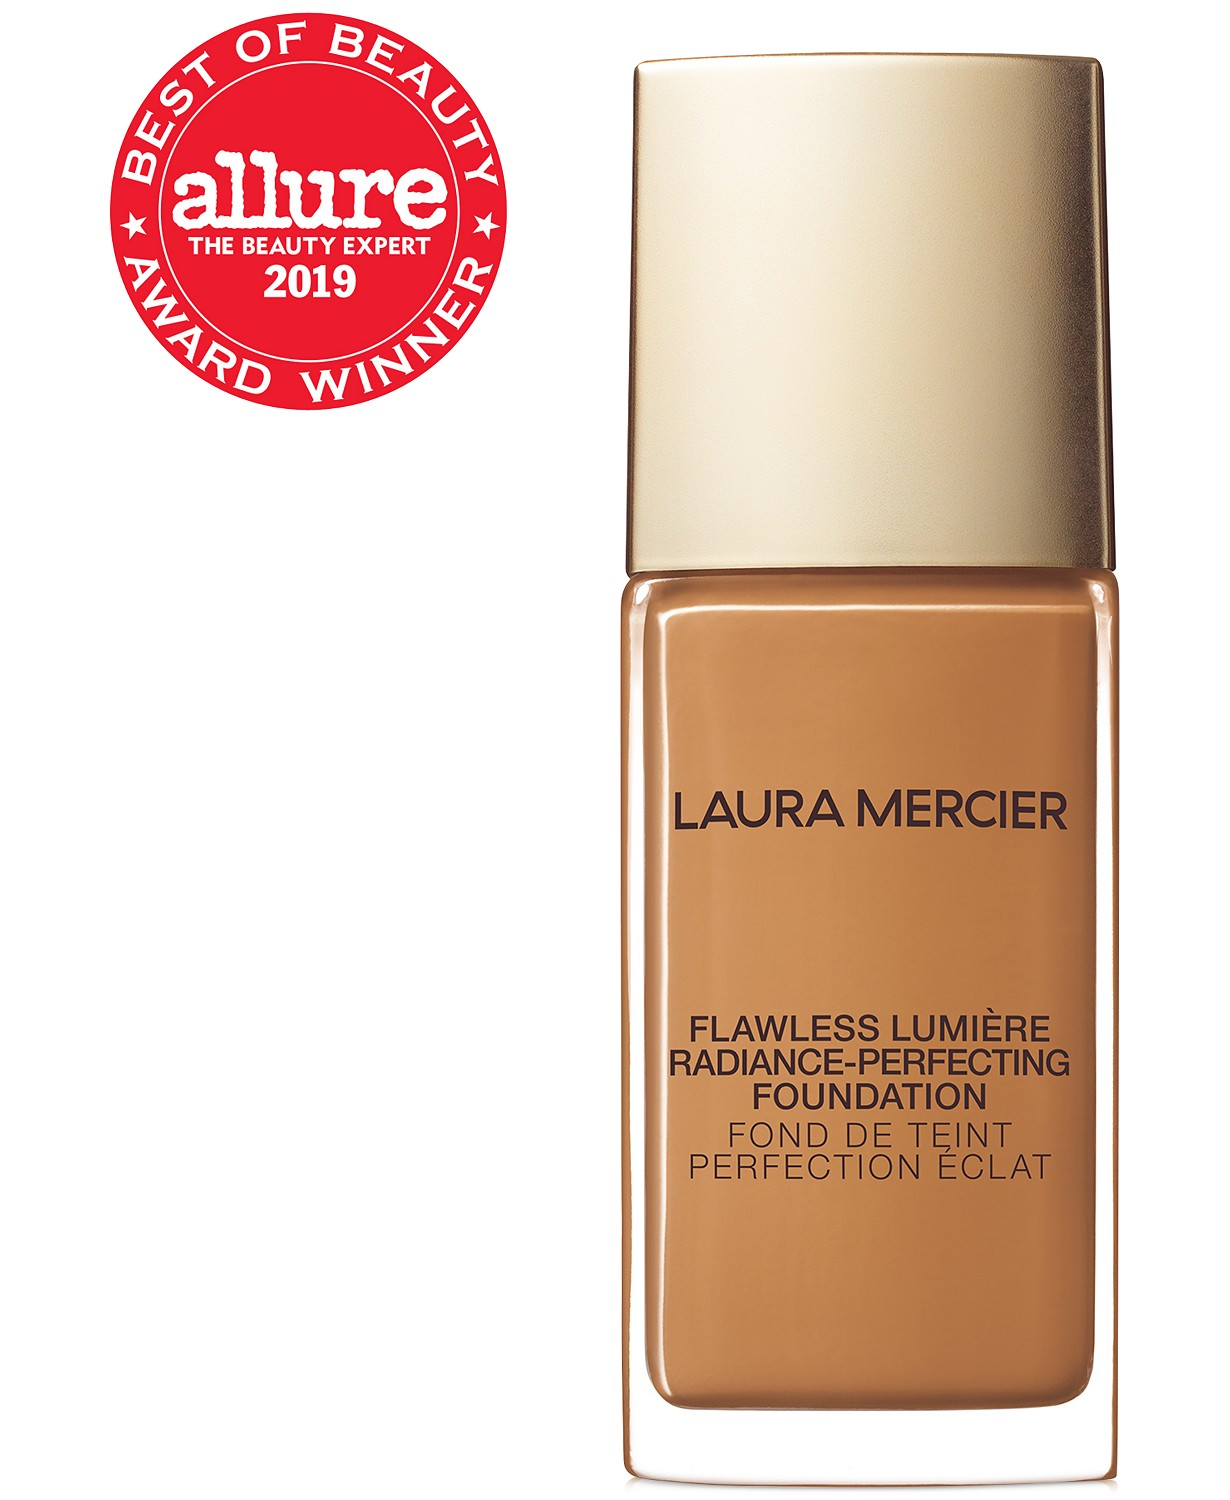 Flawless Lumiere Radiance-Perfecting Foundation - 5W1 Amber